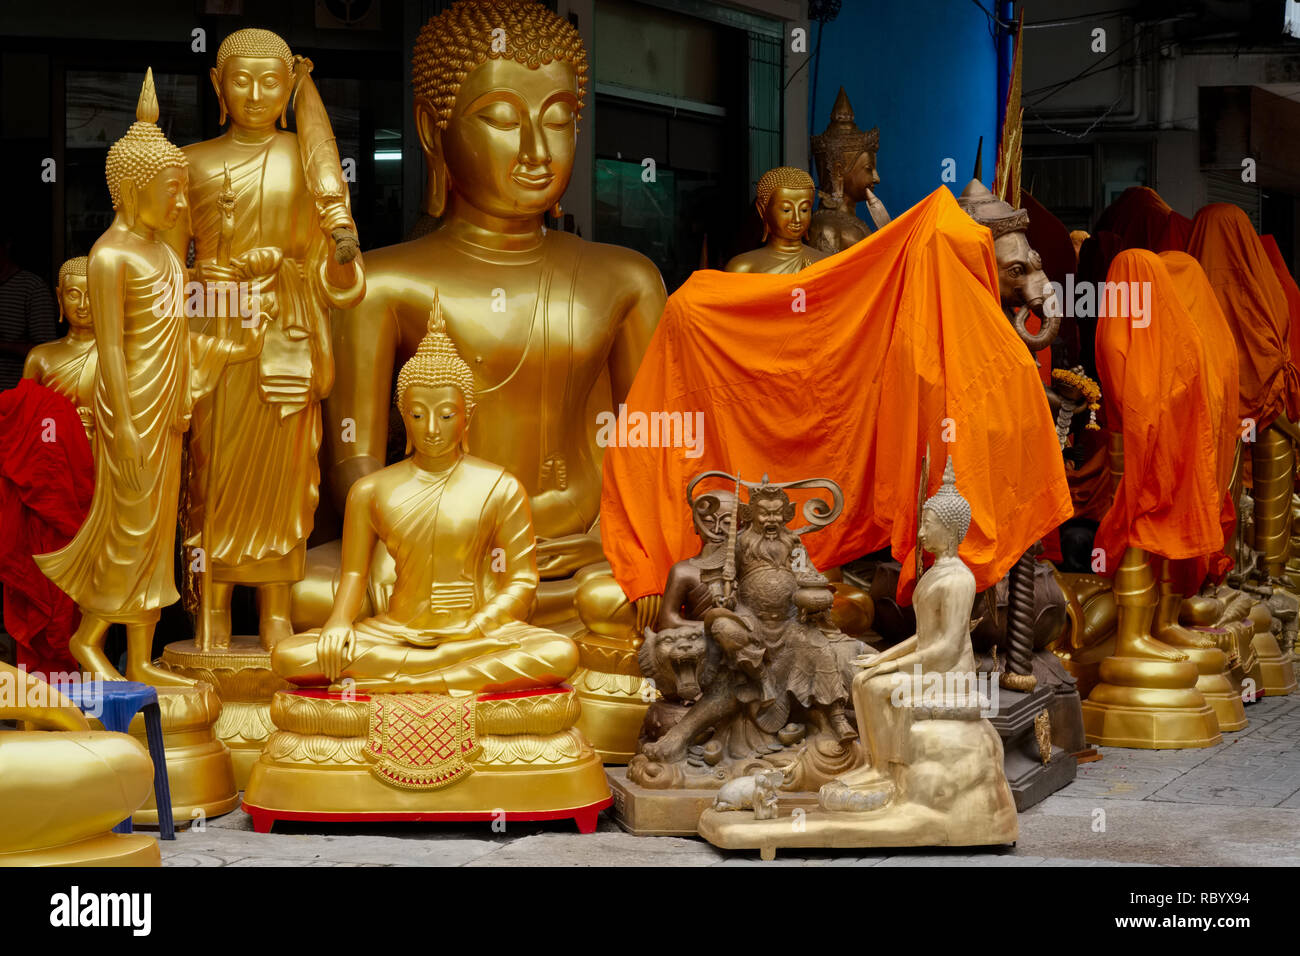 Buddha statues at a shop selling religious artifacts in Bamrung Muang Rd., Bangkok, Thailand, some covered with orange cloth for the night's 'sleep' - Stock Image